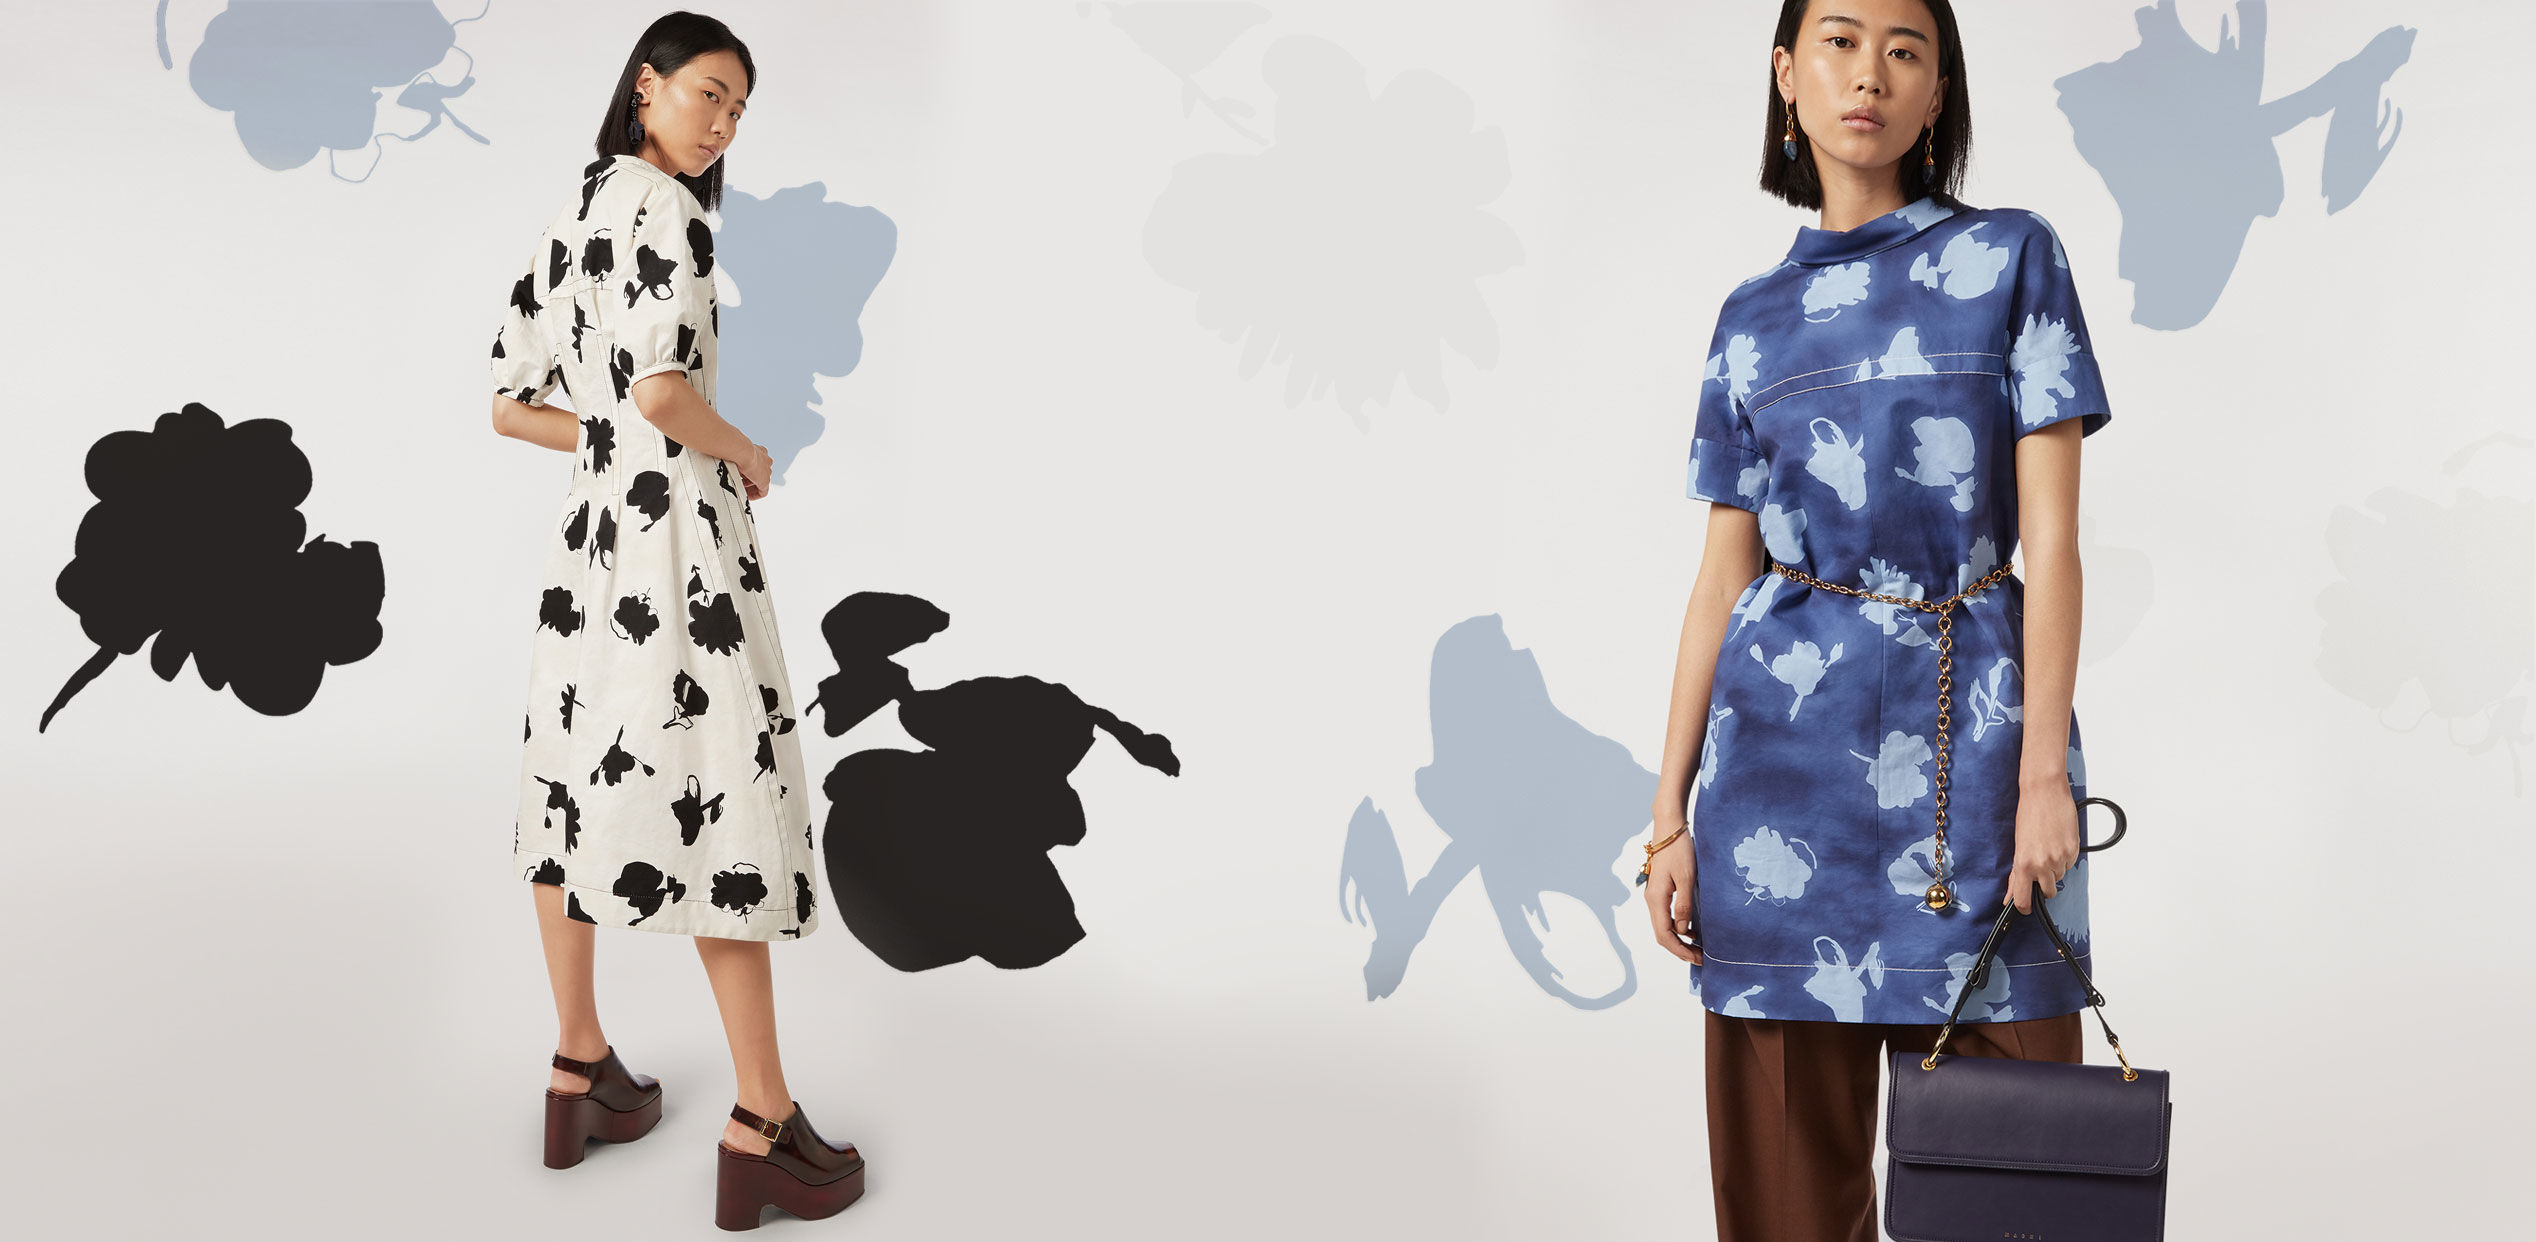 cb2ac8e52419 WOMEN'S DRESSES New prints from the Prefall 2019 collection